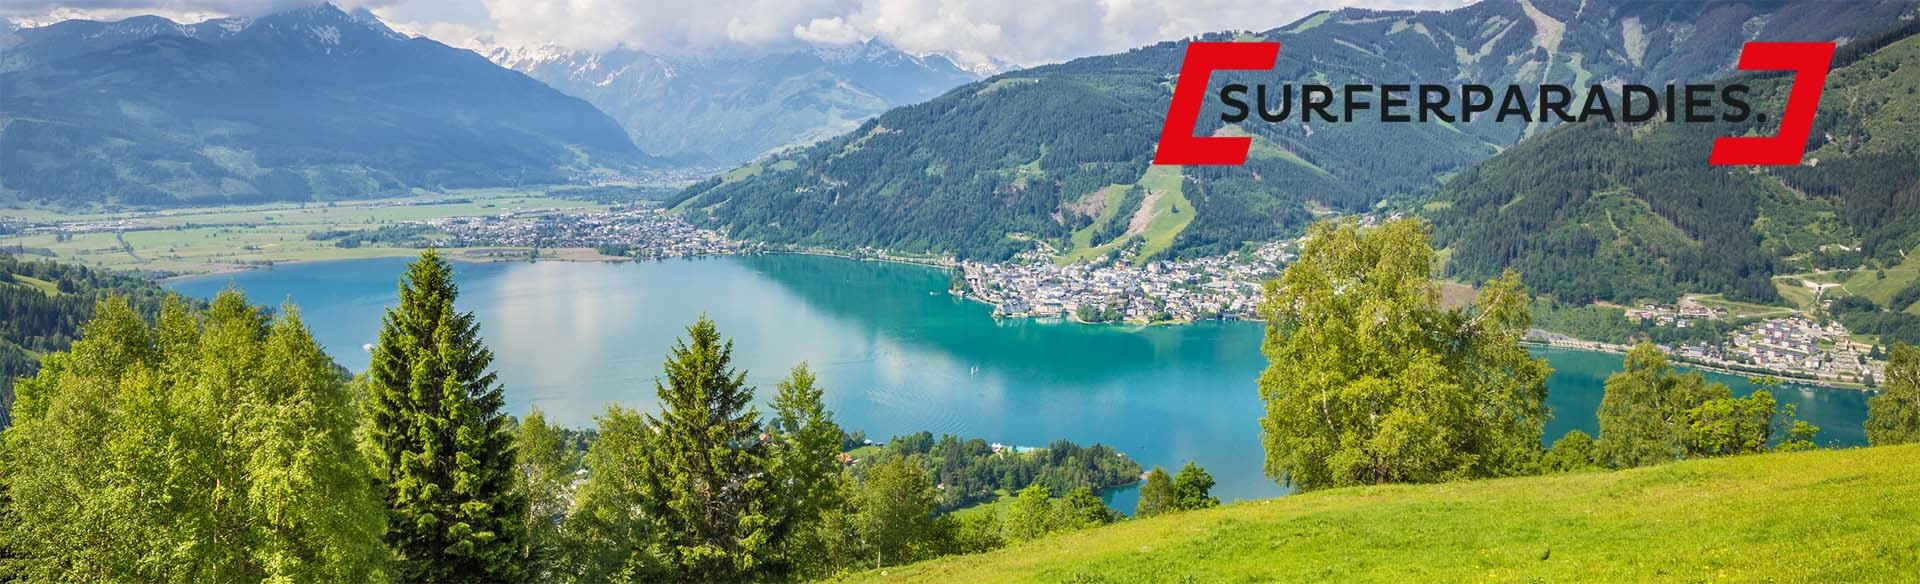 Panoramic view of beautiful scenery in the Alps with clear lake and green meadows full of blooming flowers on a sunny day with blue sky and clouds in springtime, Zell am See, Salzburger Land, Austria.